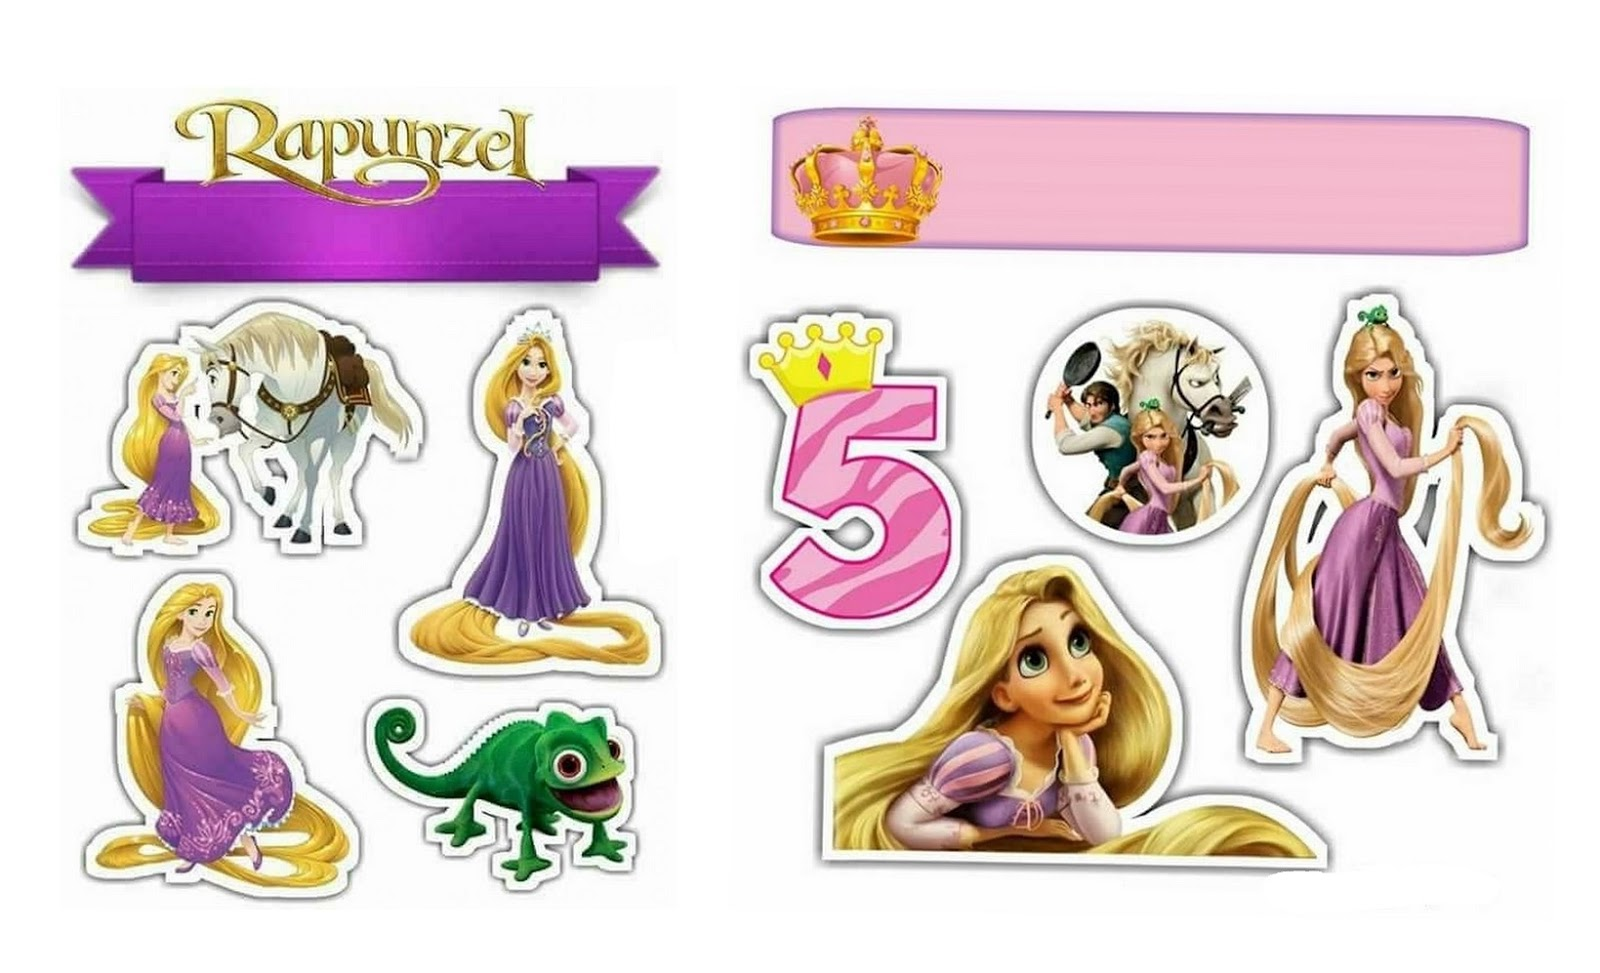 photograph about Rapunzel Printable identify Rapunzel Totally free Printable Cake Toppers. - Oh My Fiesta! in just english